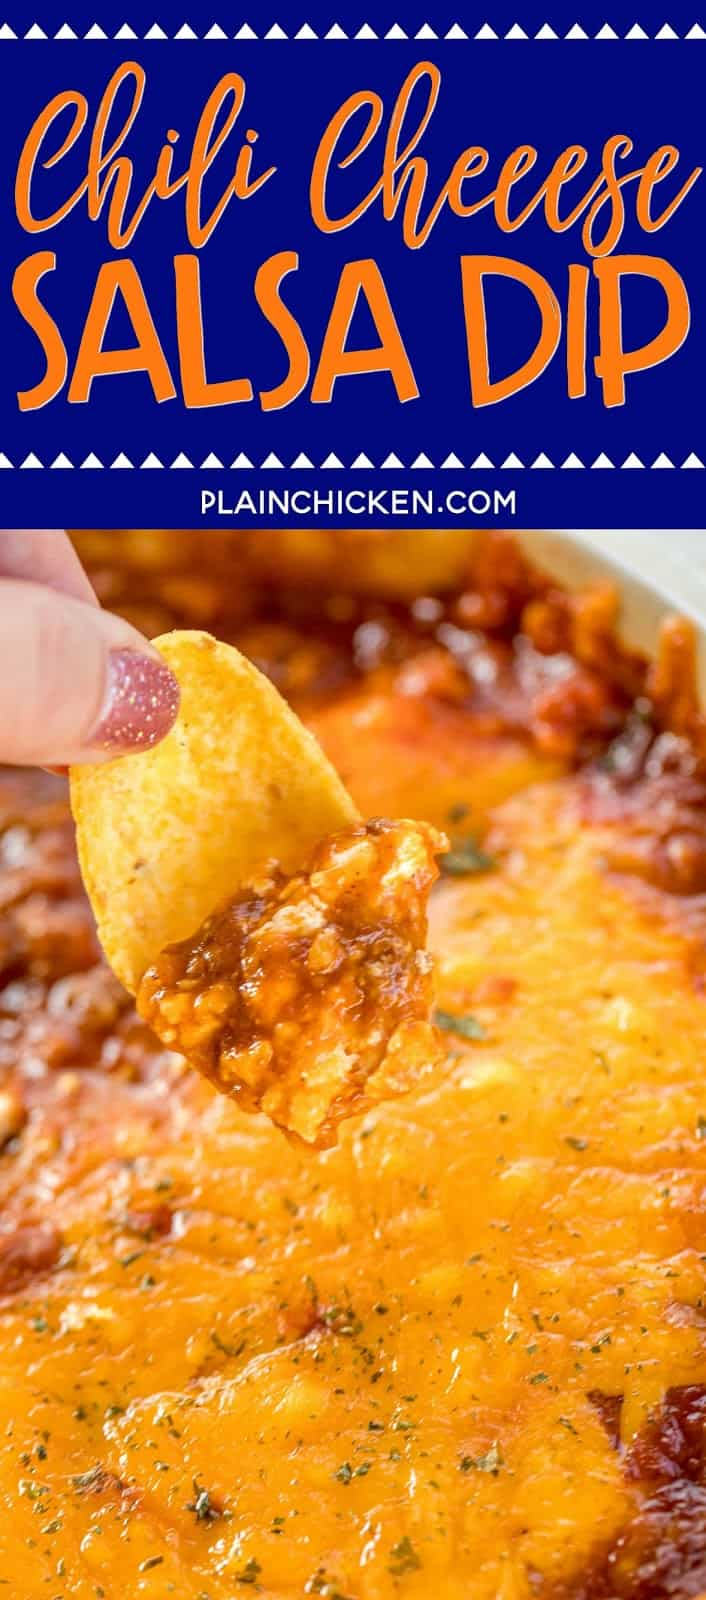 Chili Cheese Salsa Dip recipe - took this to a party and it was the first thing to go!! Everybody asked for the recipe. They couldn't believe how easy this was to make!!! Chili, Cream Cheese, Salsa and Cheddar Cheese. Serve the dip with fritos, tortilla chips, celery stick or bell pepper strips. Tastes great hot out of the oven or cooled to room temperature. Make this for your next party. It is a guaranteed hit!! #diprecipe #partyfood #chili #salsa #dip #appetizerrecipe